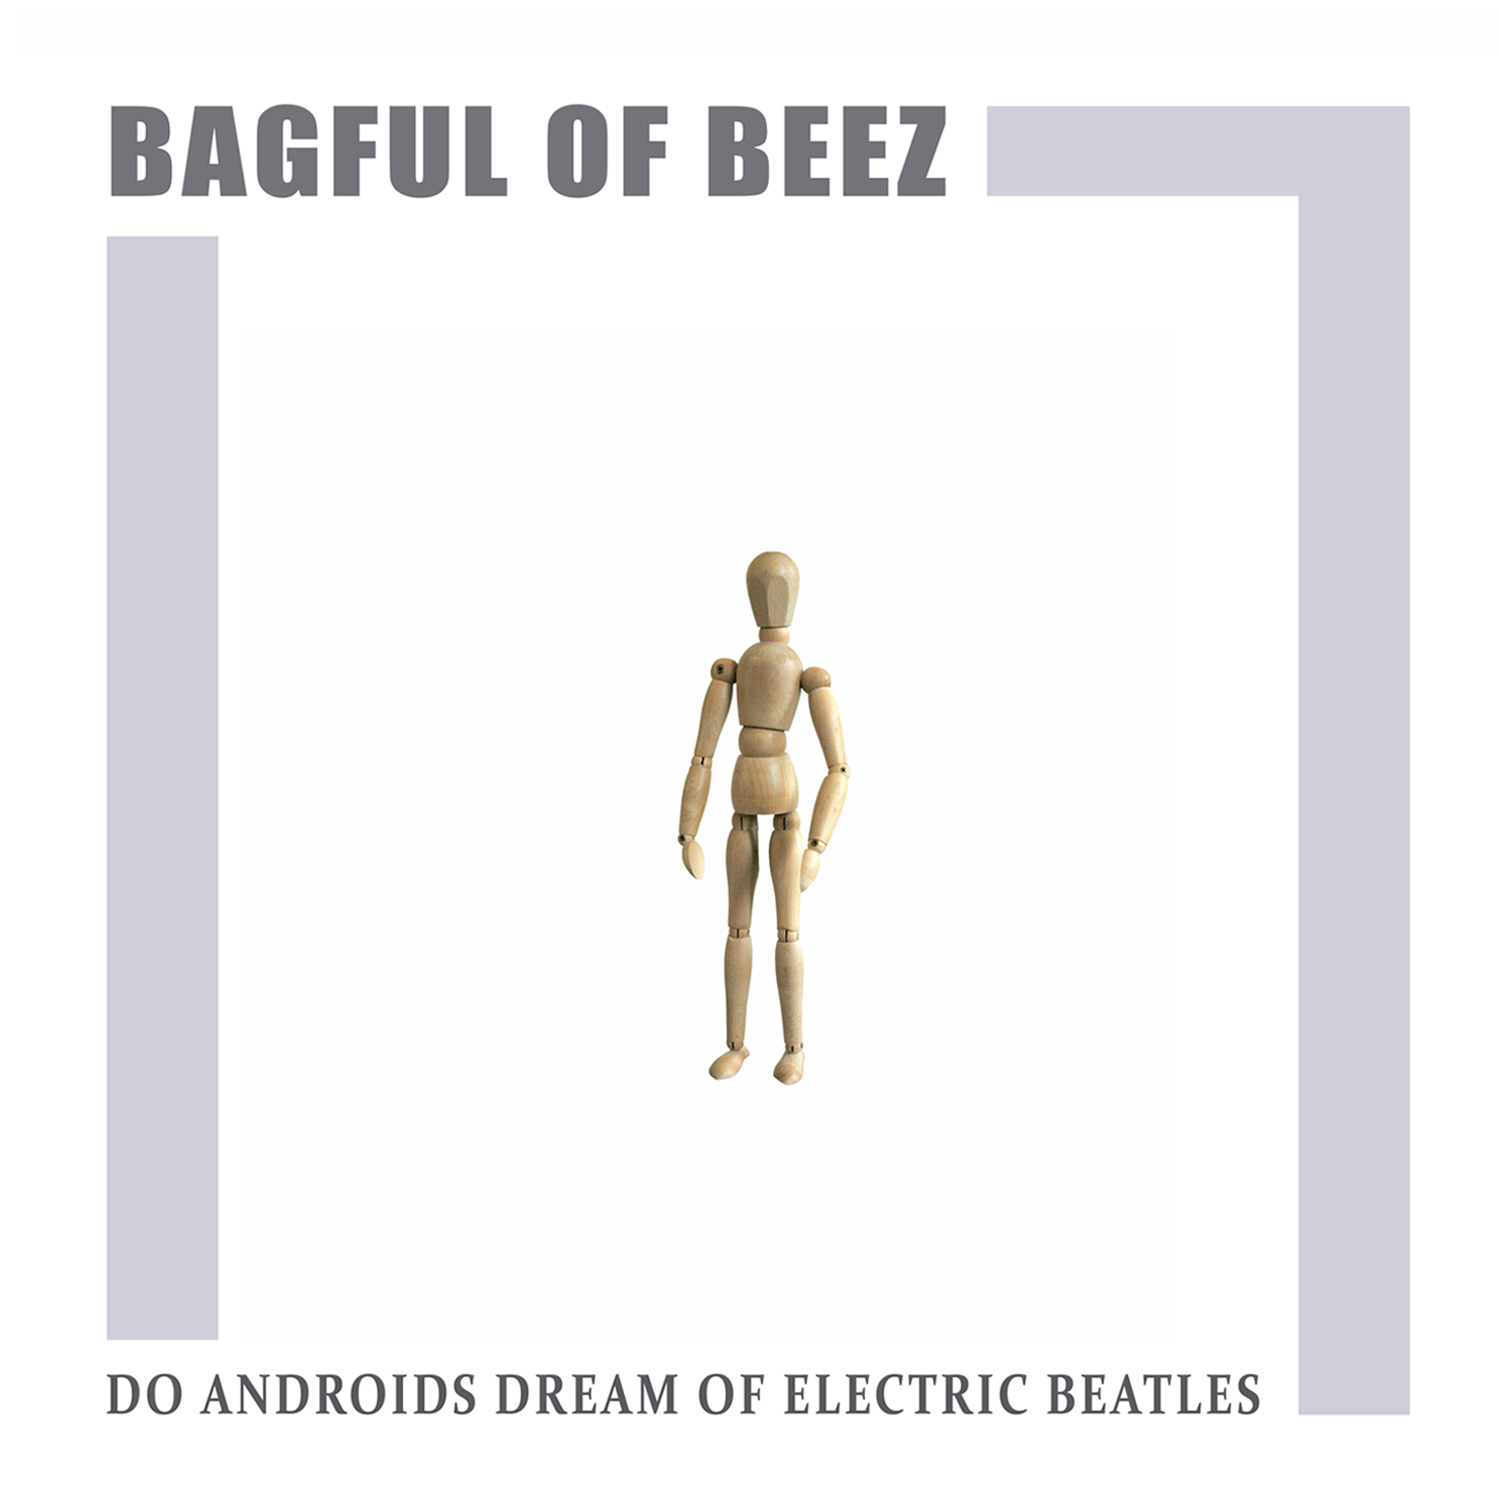 Bagful of Beez - Do Androids Dream of Electric Beatles